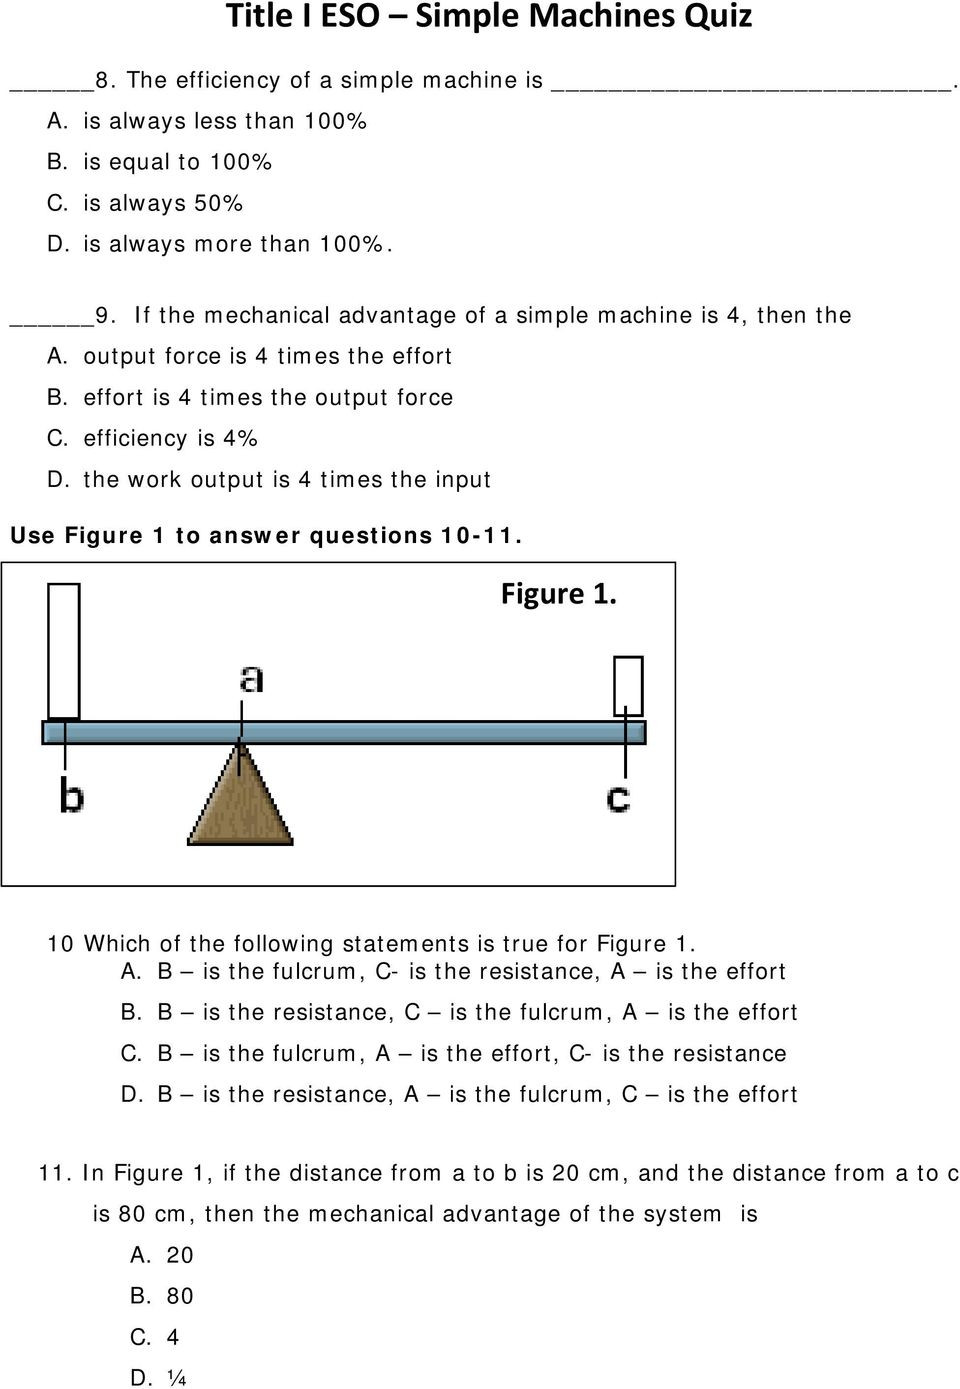 Simple Machine Worksheets Middle School Simple Machines Quiz Pdf Free Download